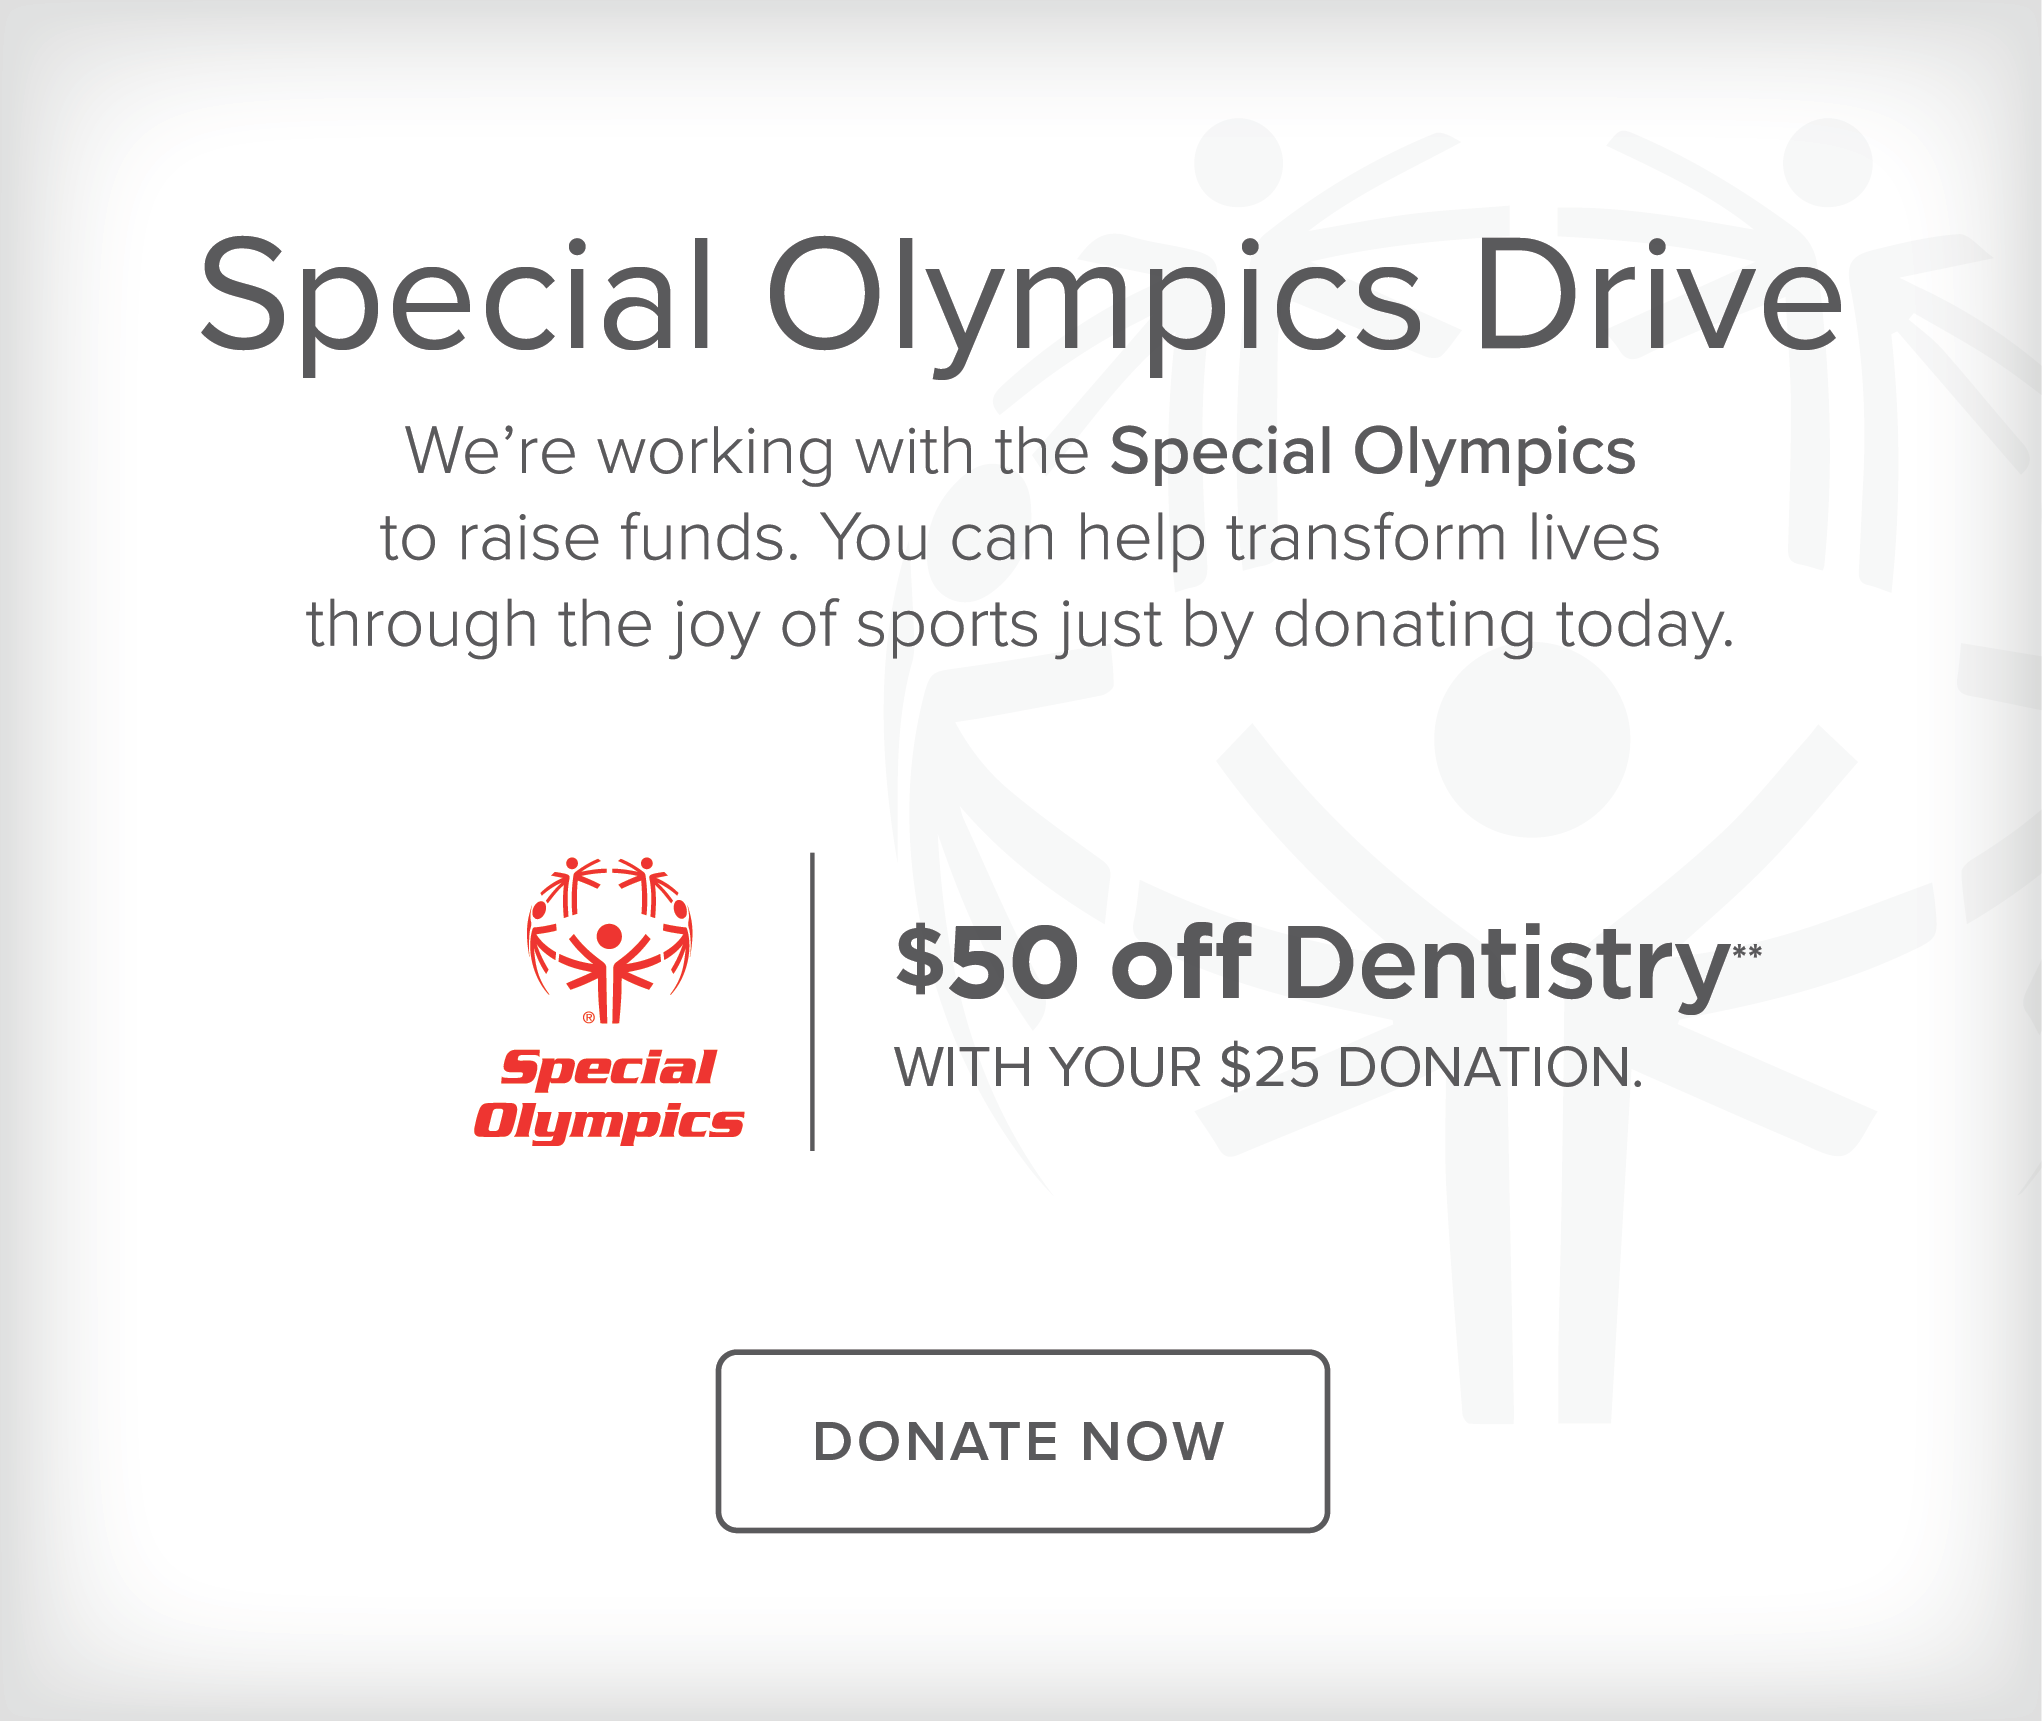 Special Olympics Drive - Castle Rock Modern Dentistry and Orthodontics